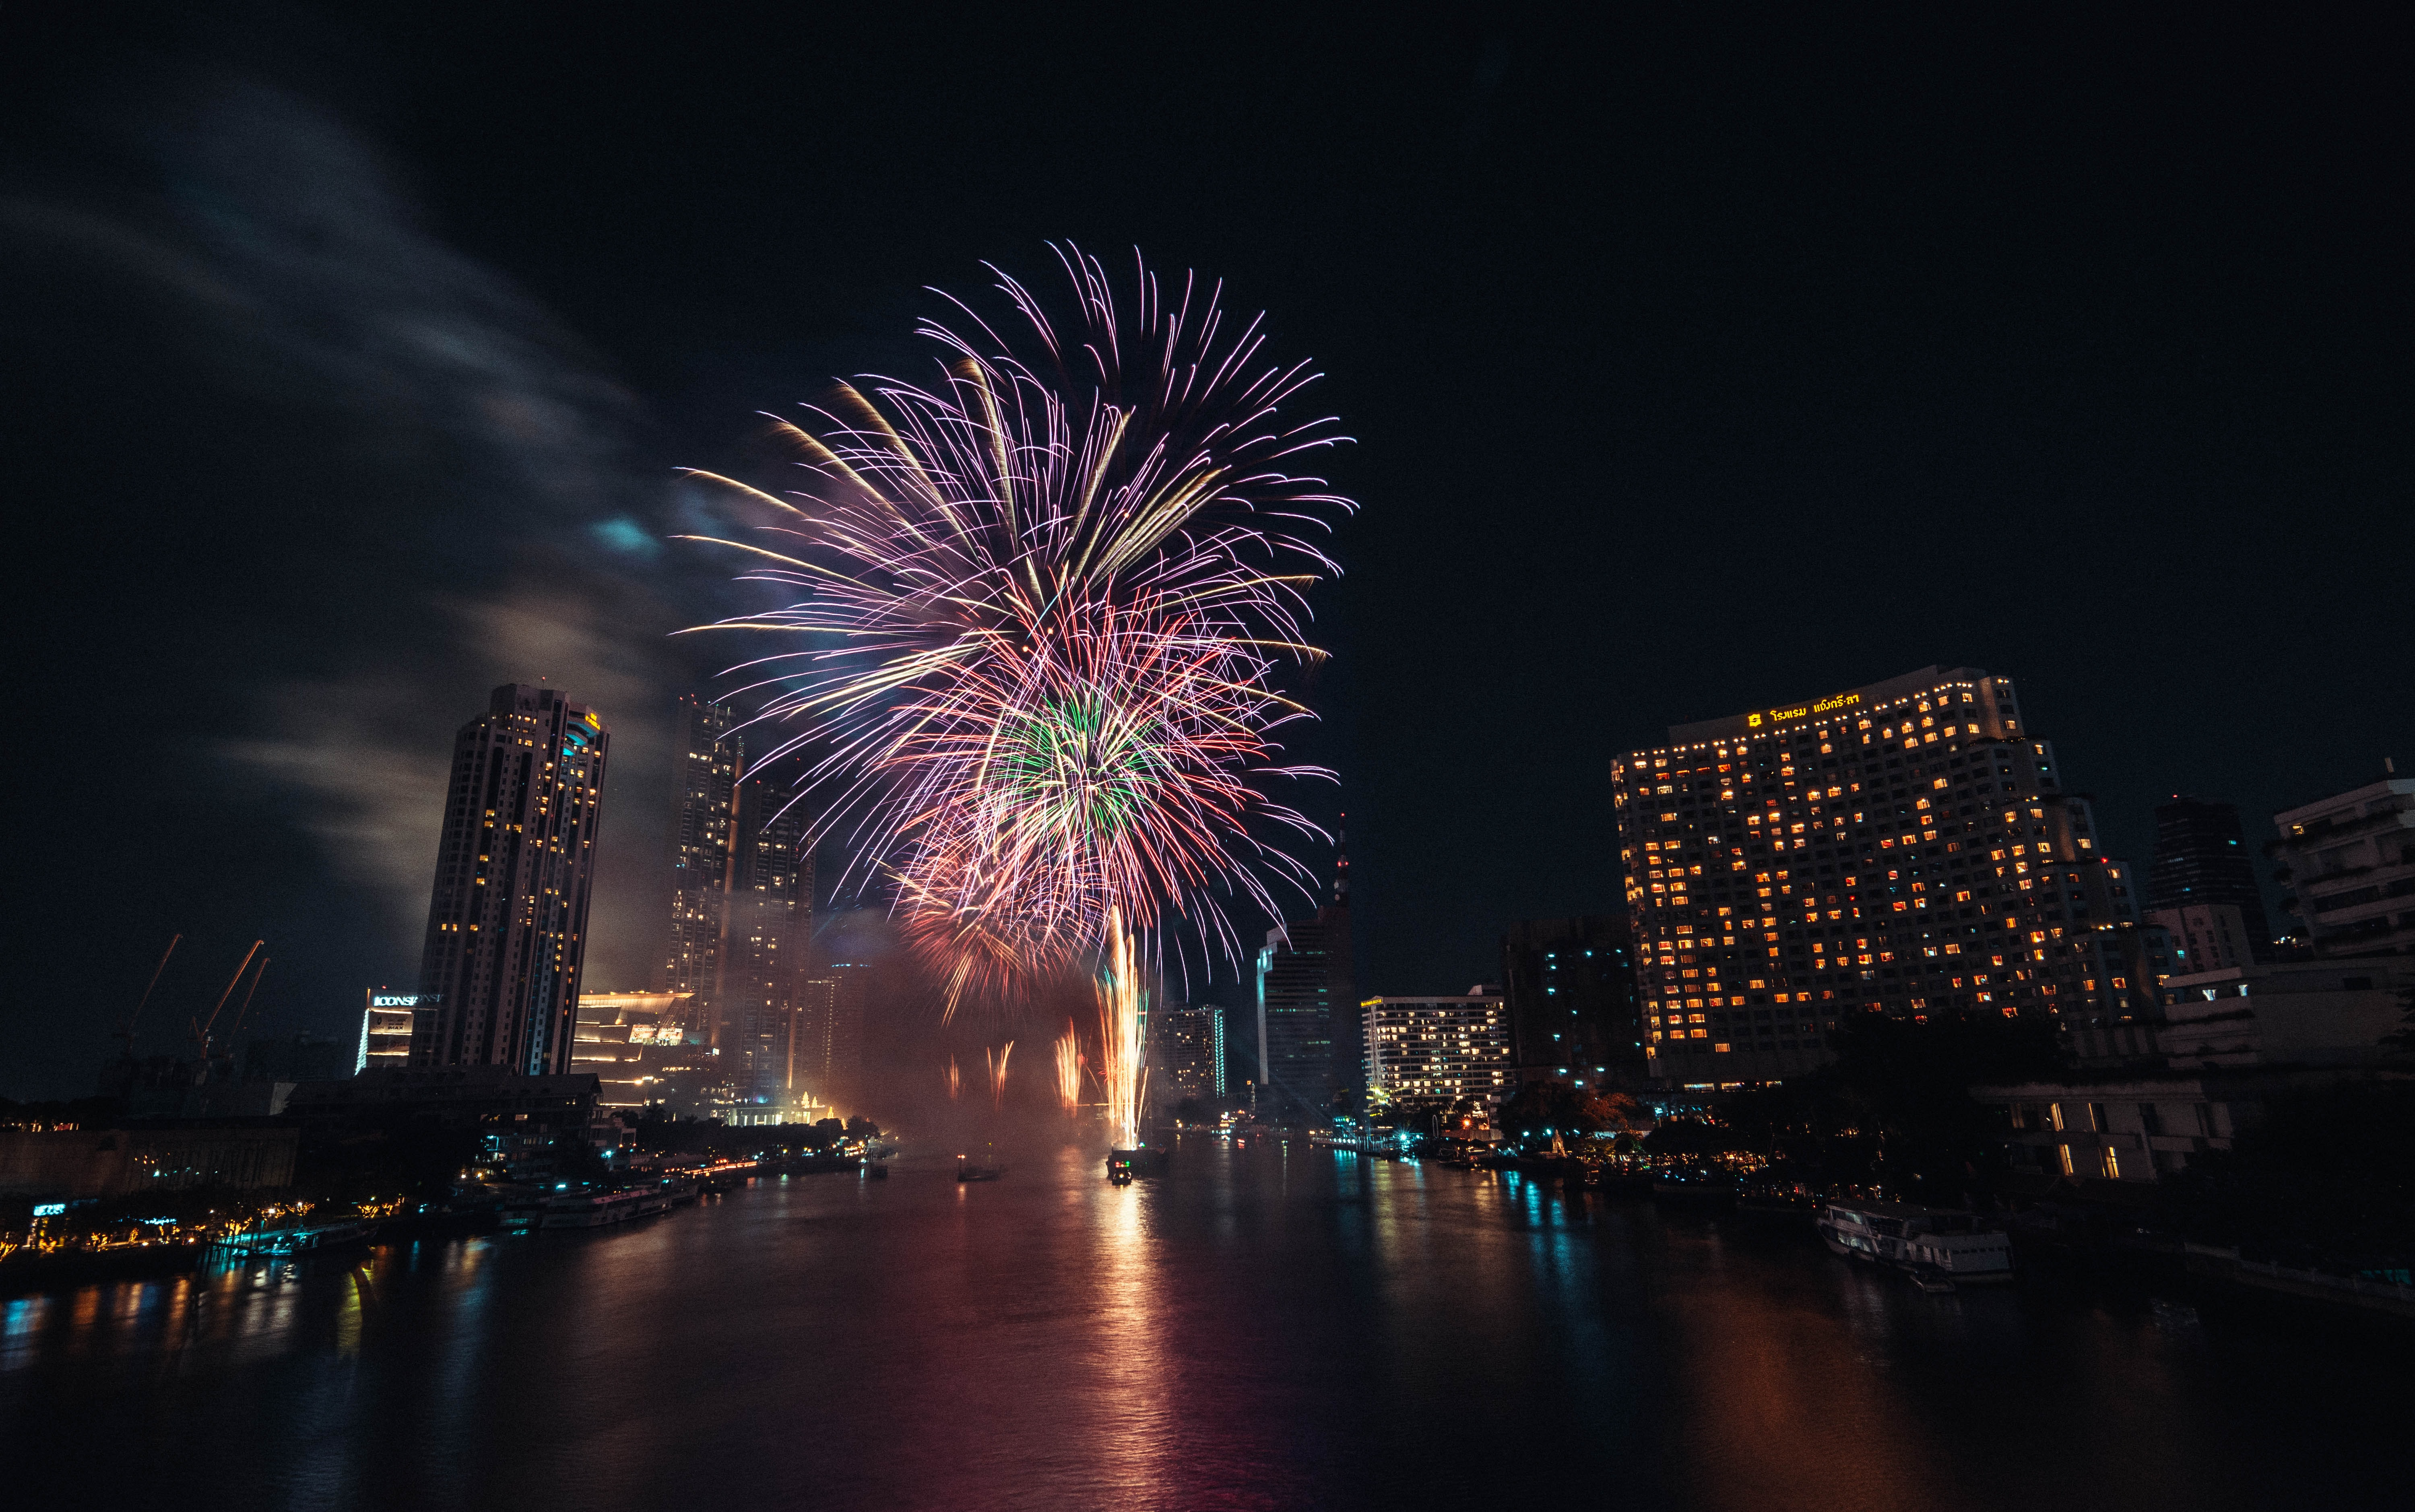 155567 download wallpaper Holidays, Water, Explosions, City, Sparks, Holiday, Fireworks, Firework screensavers and pictures for free